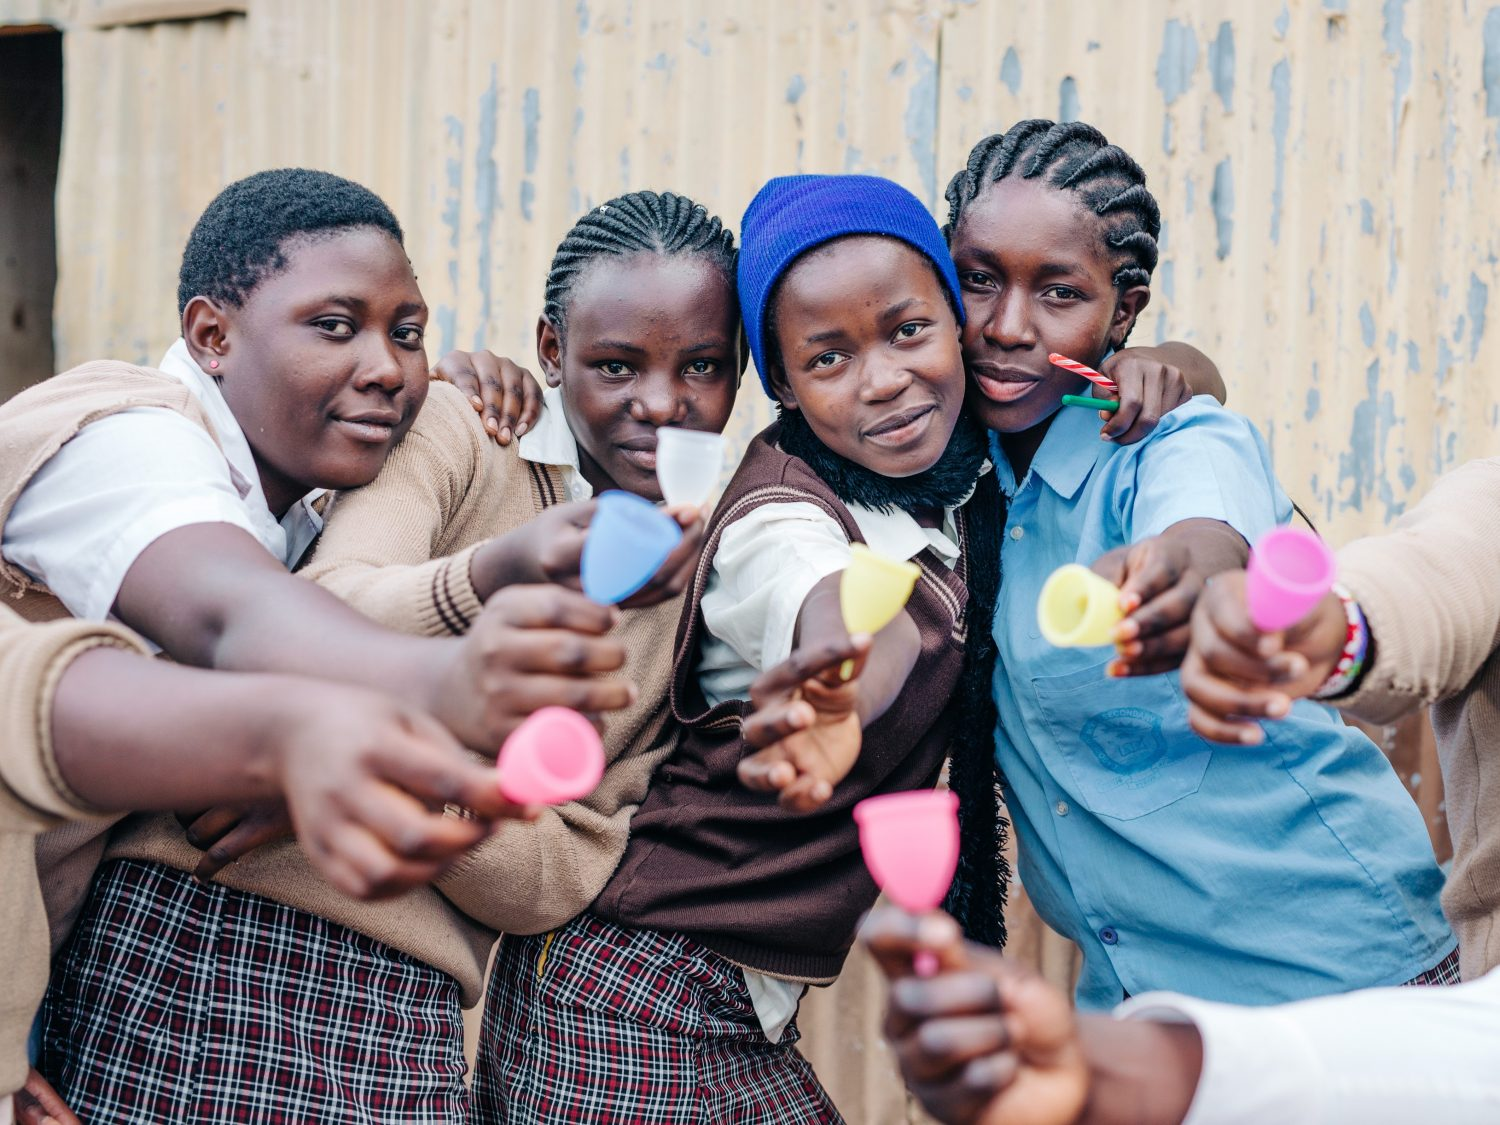 Lune Group has worked with women in developing countries, including these Kenyan ladies.